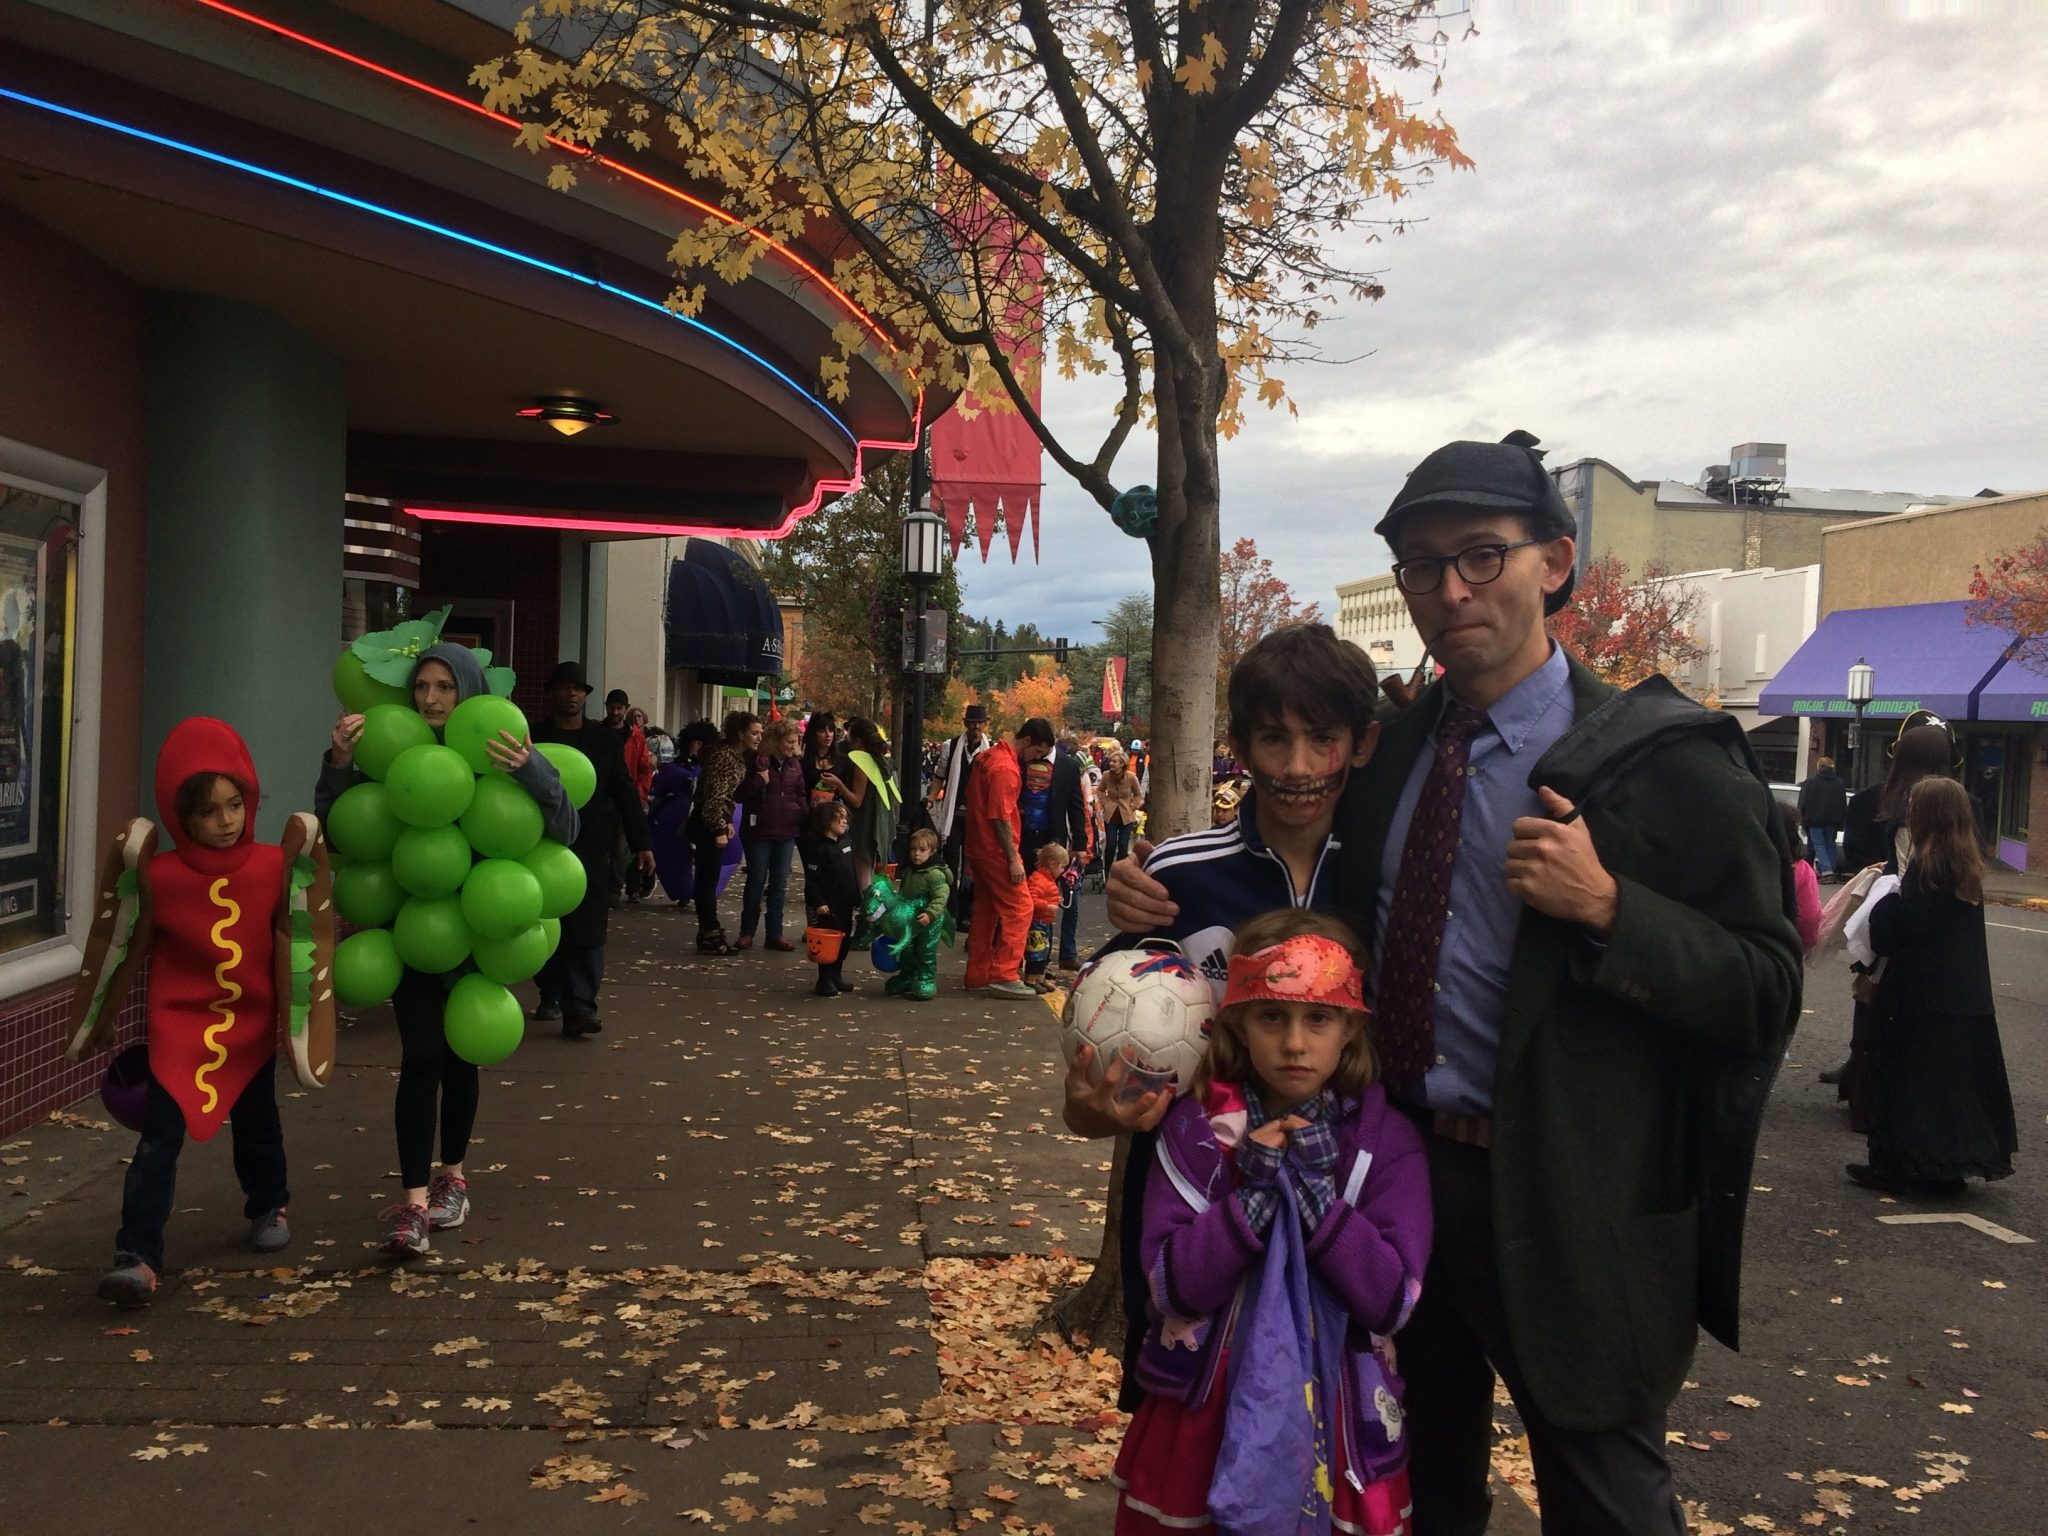 Mr. Sherlock Holmes accompanied by a zombie soccer player and a princess outside the Varsity Theater on Halloween in Ashland, Oregon